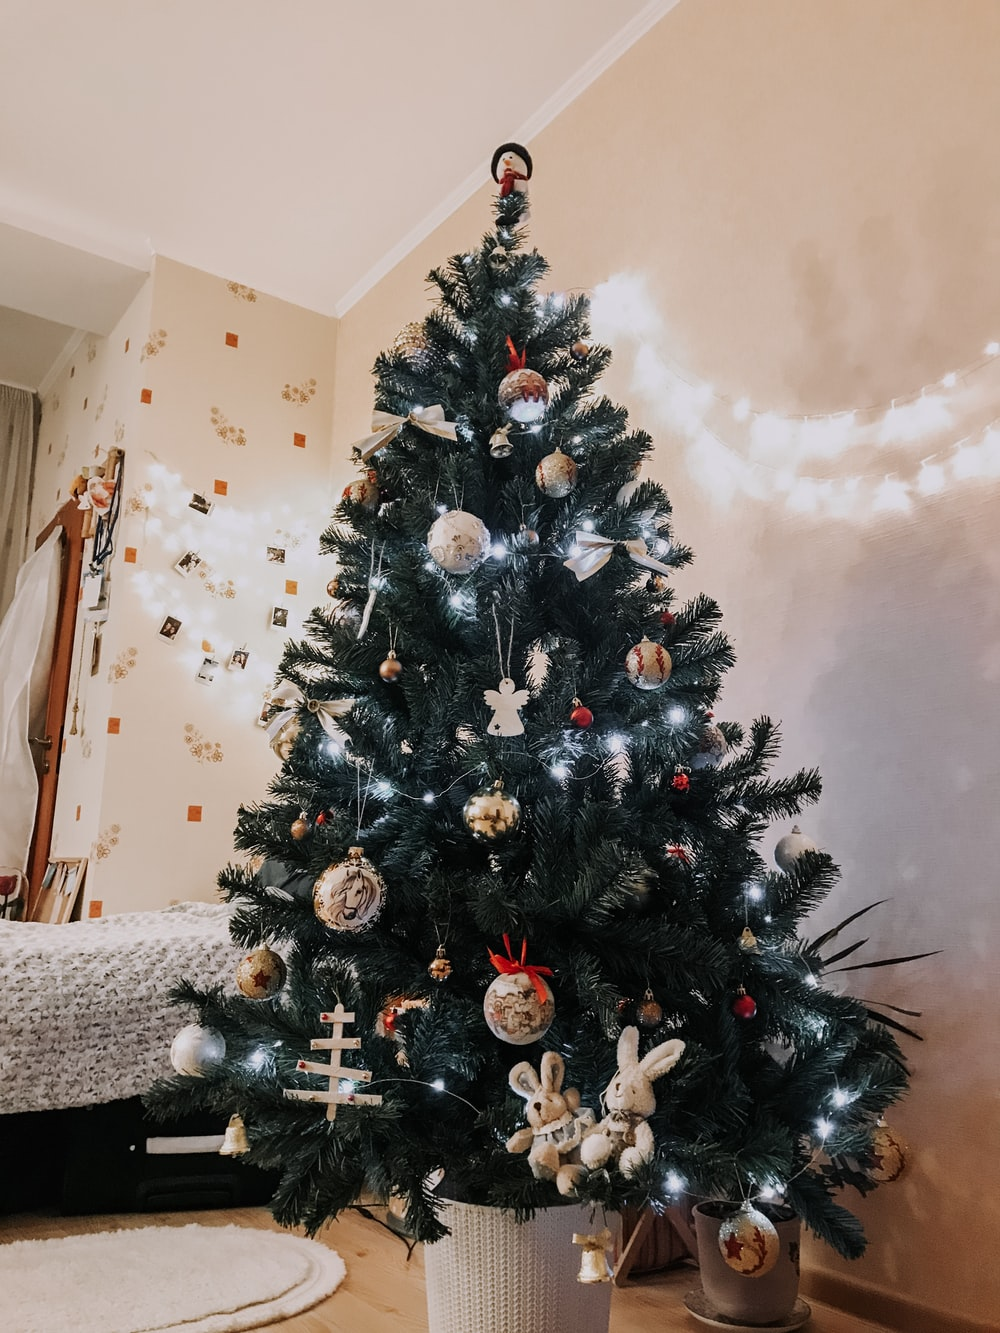 green Christmas tree with decorations